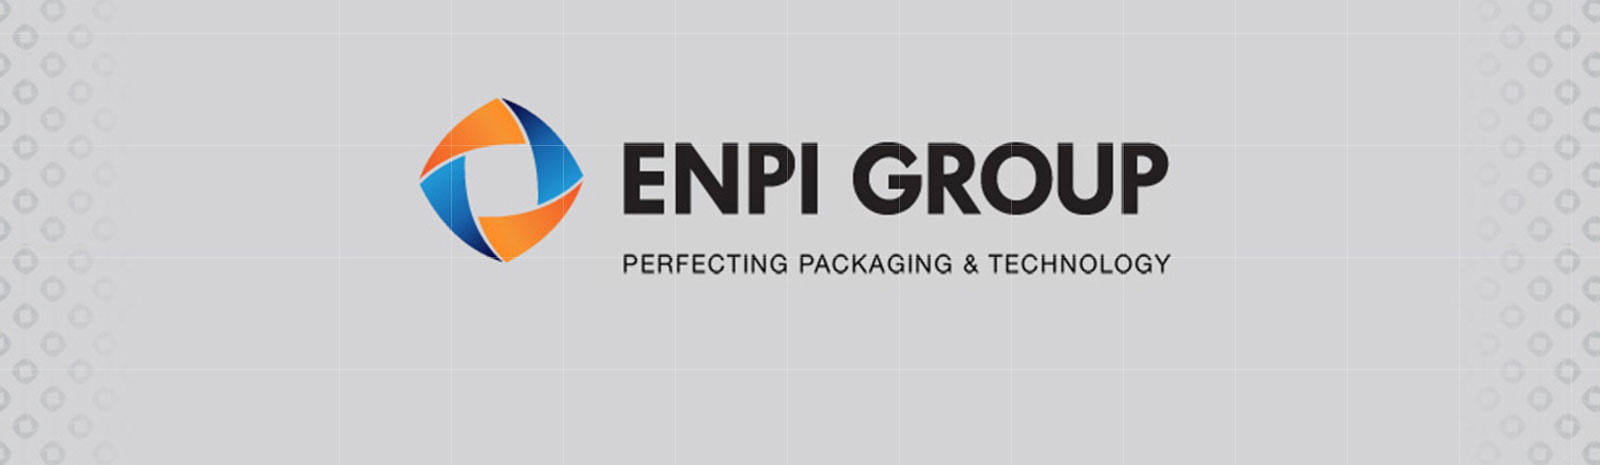 enpigroup